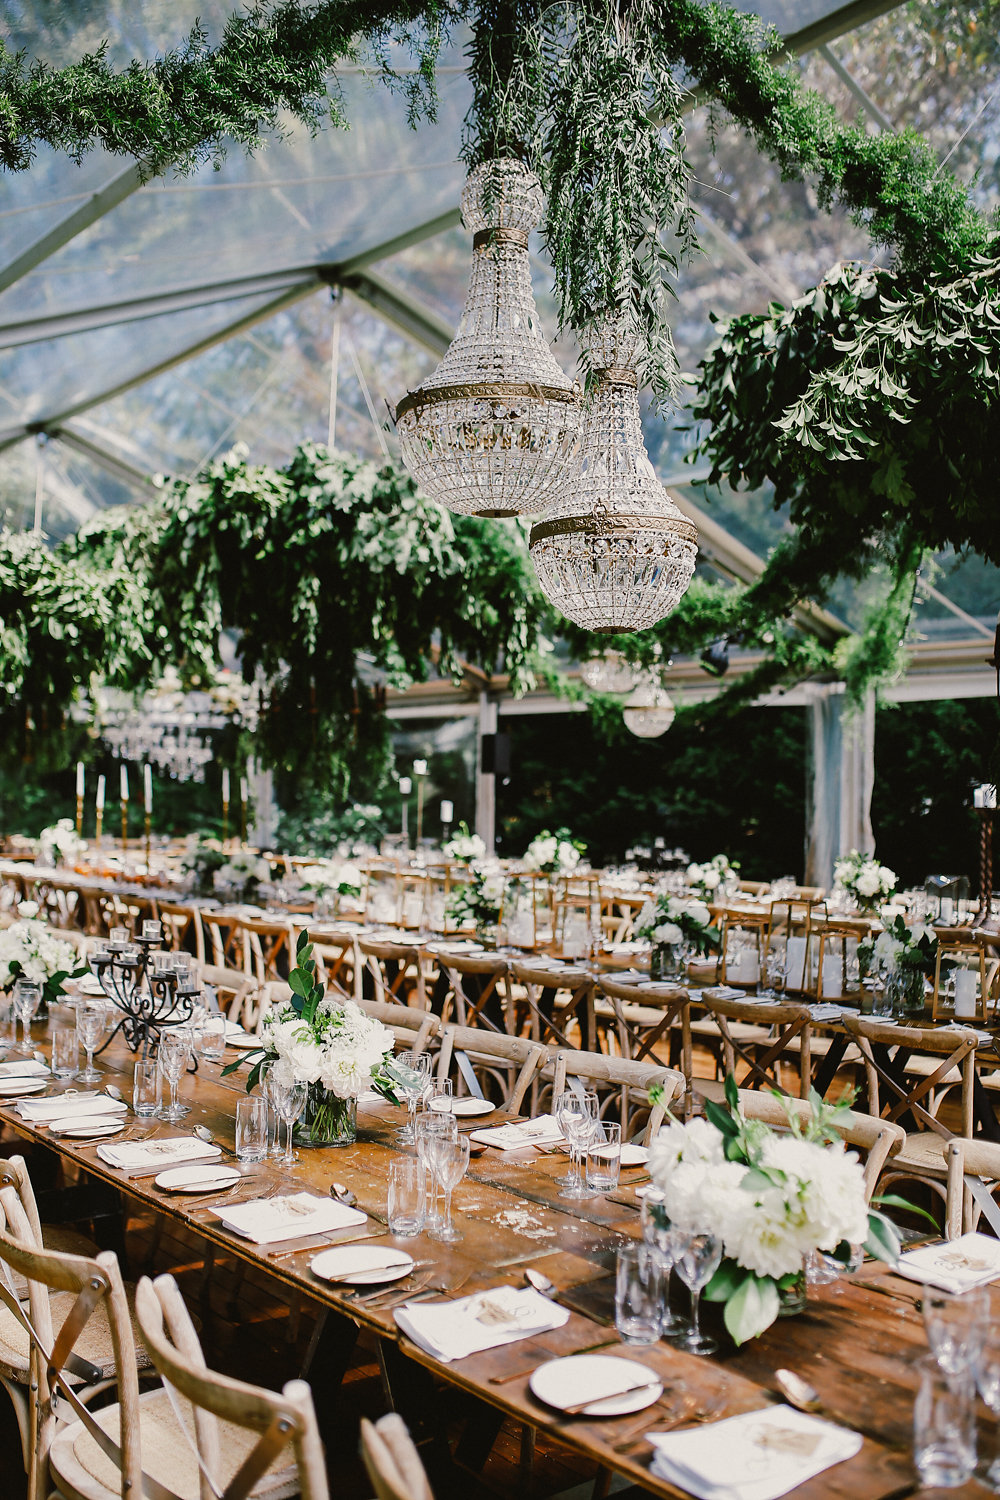 chic tented wedding reception - photo by Lara Hotz http://ruffledblog.com/secret-garden-inspired-australian-wedding